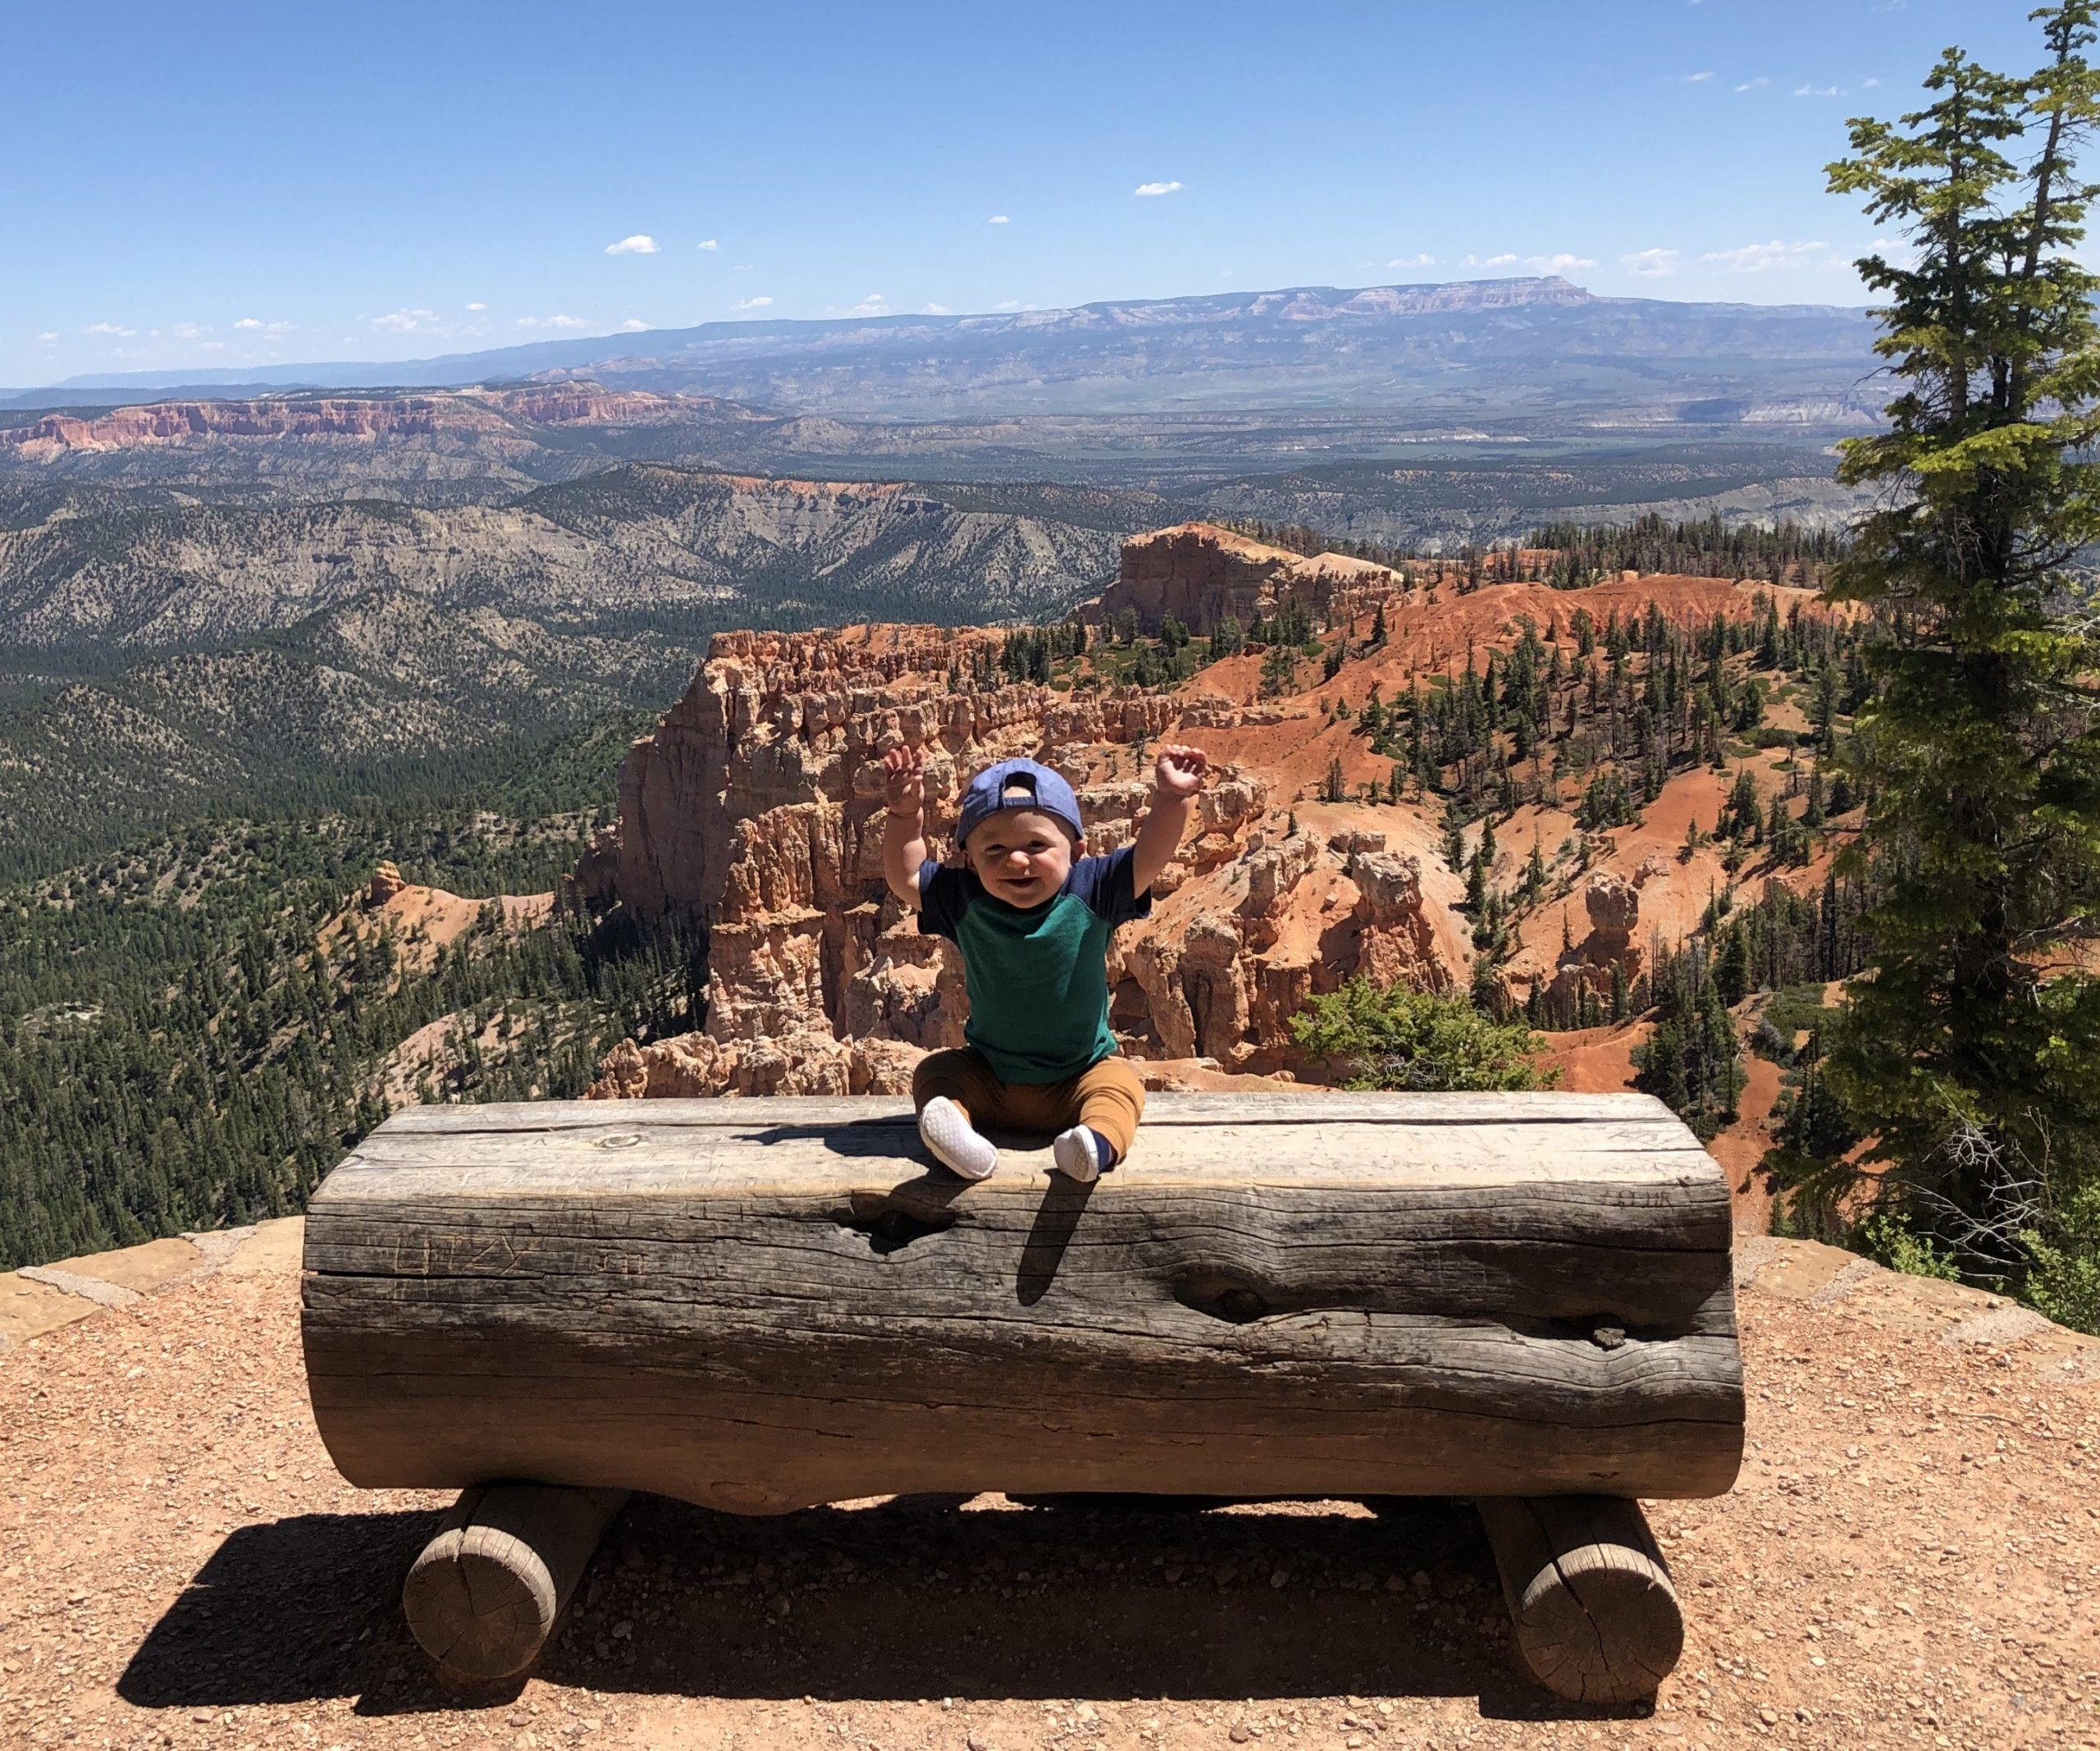 baby sitting on a bench in a national park